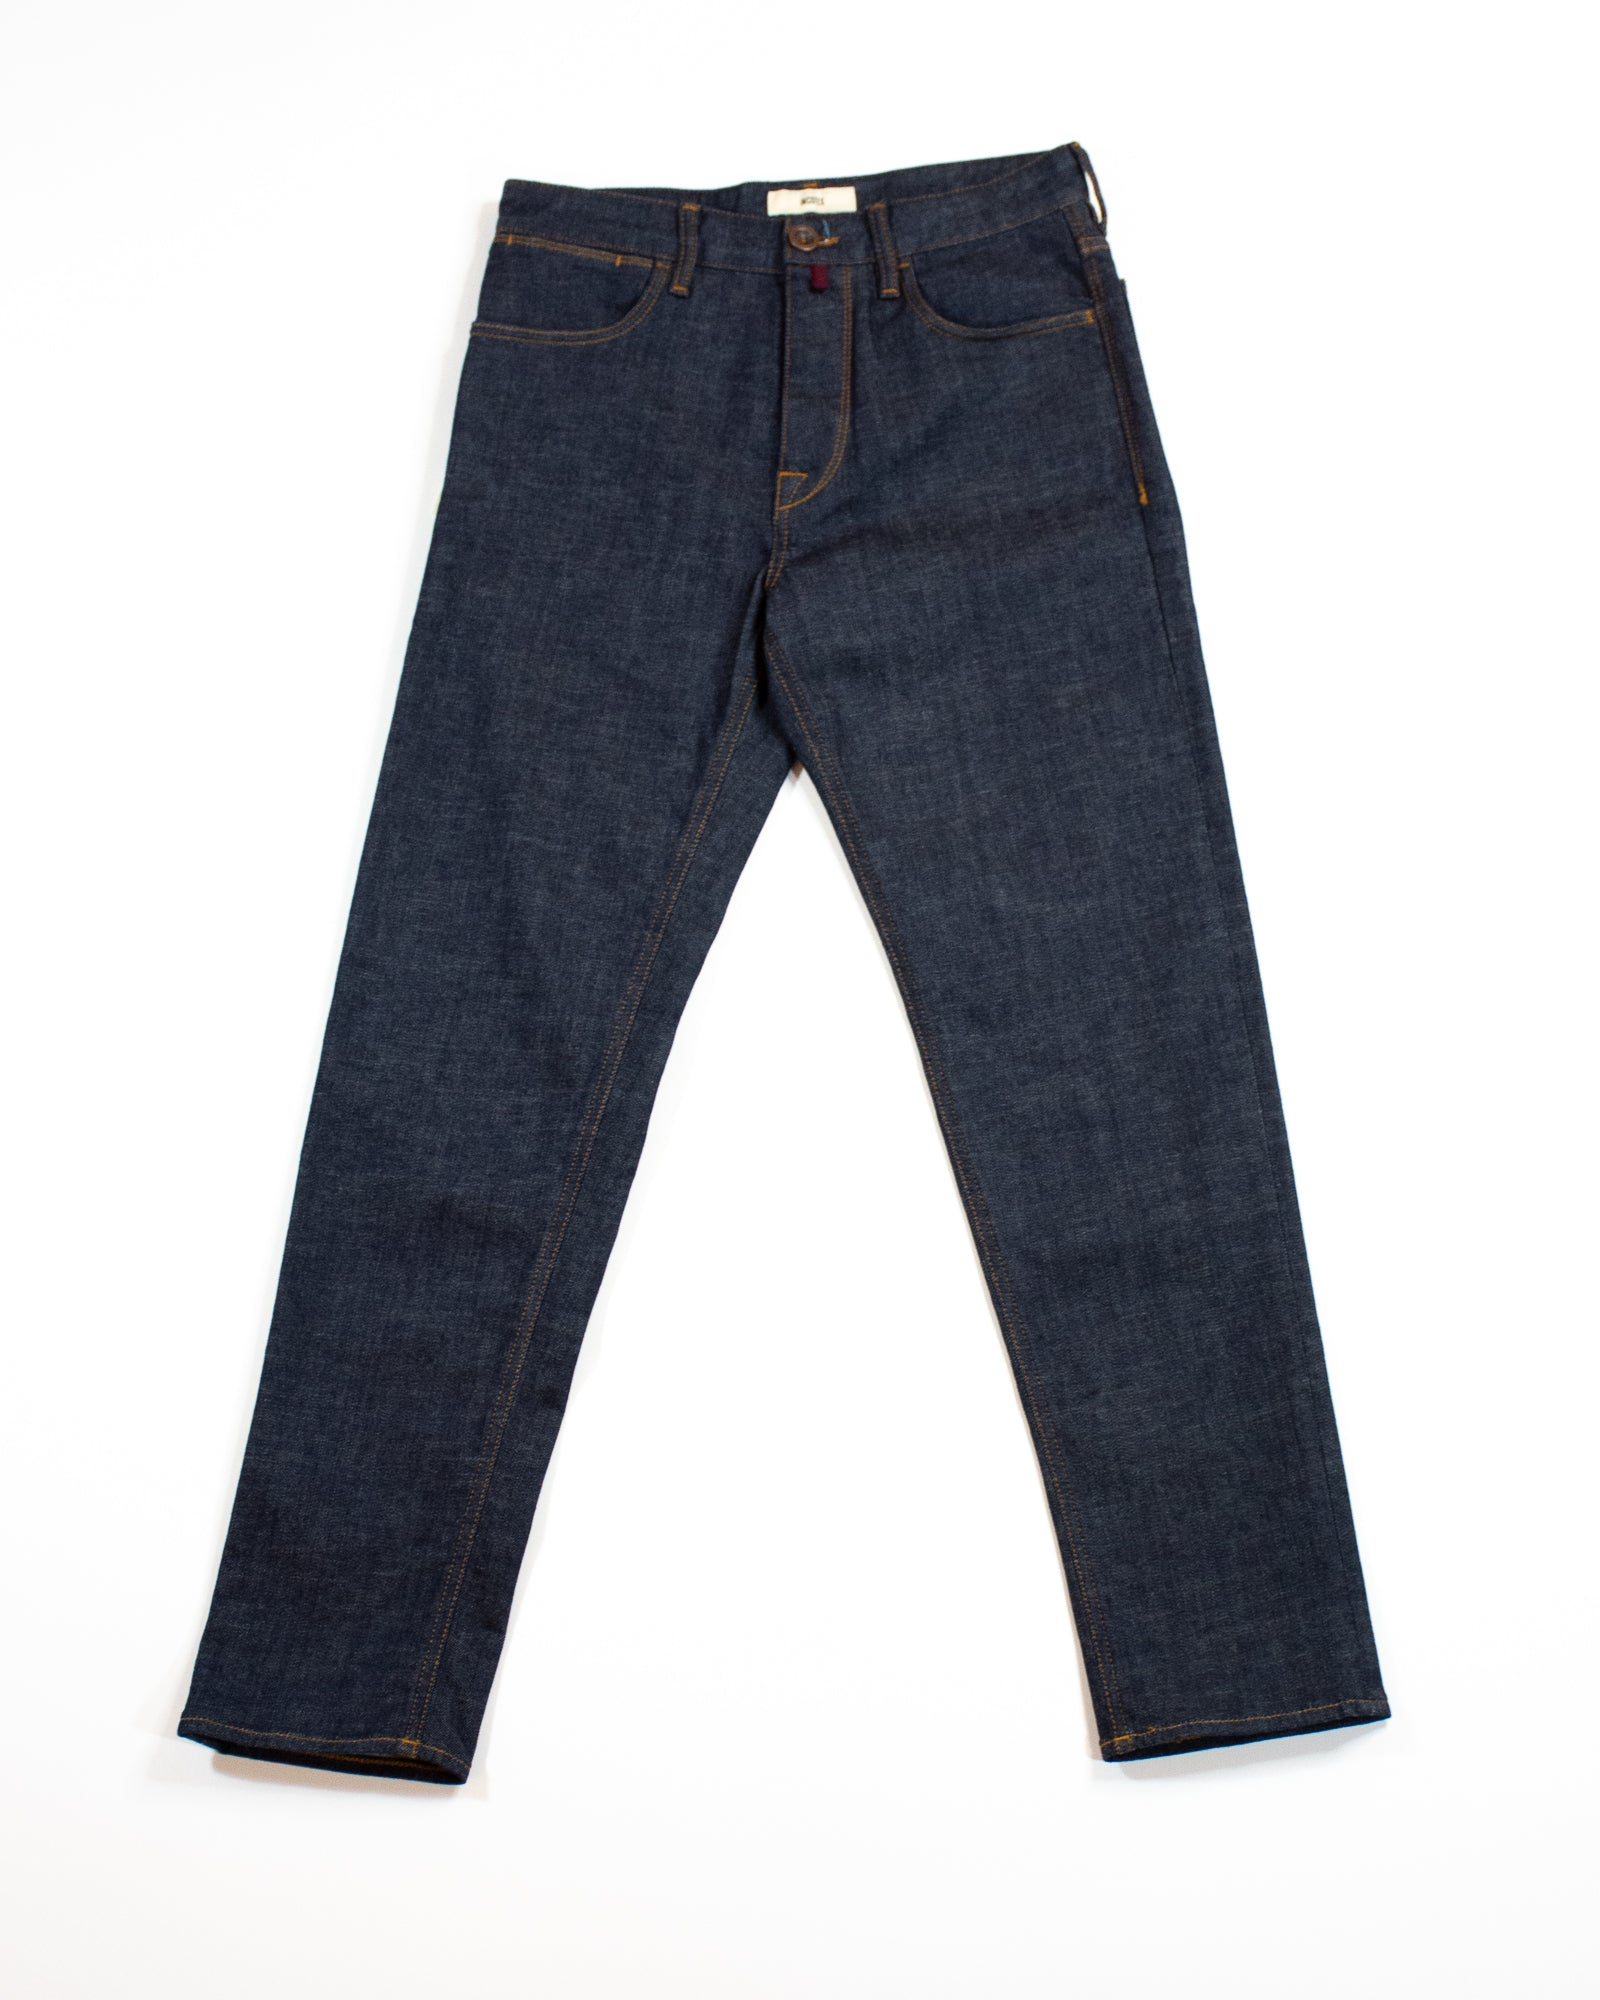 SLOWEAR 5 Pocket Indigo Jean